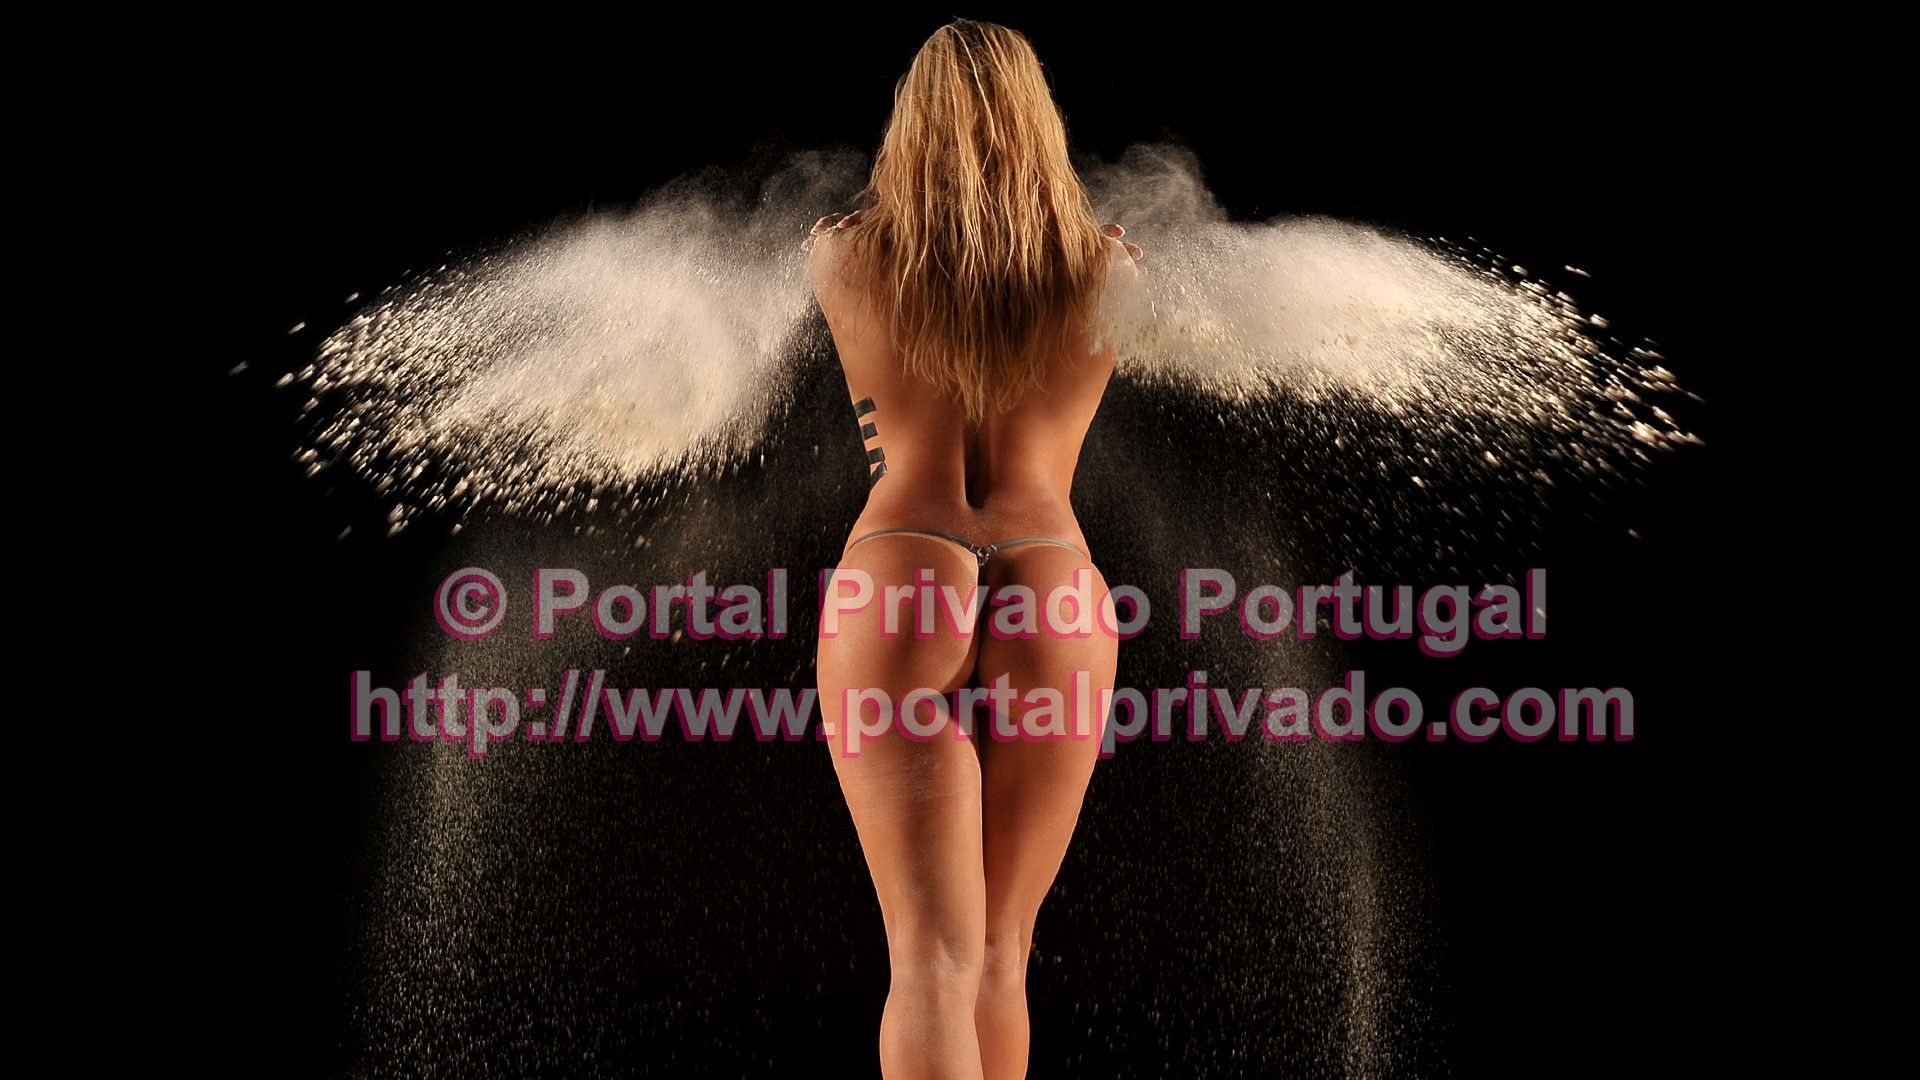 Babes Portugal